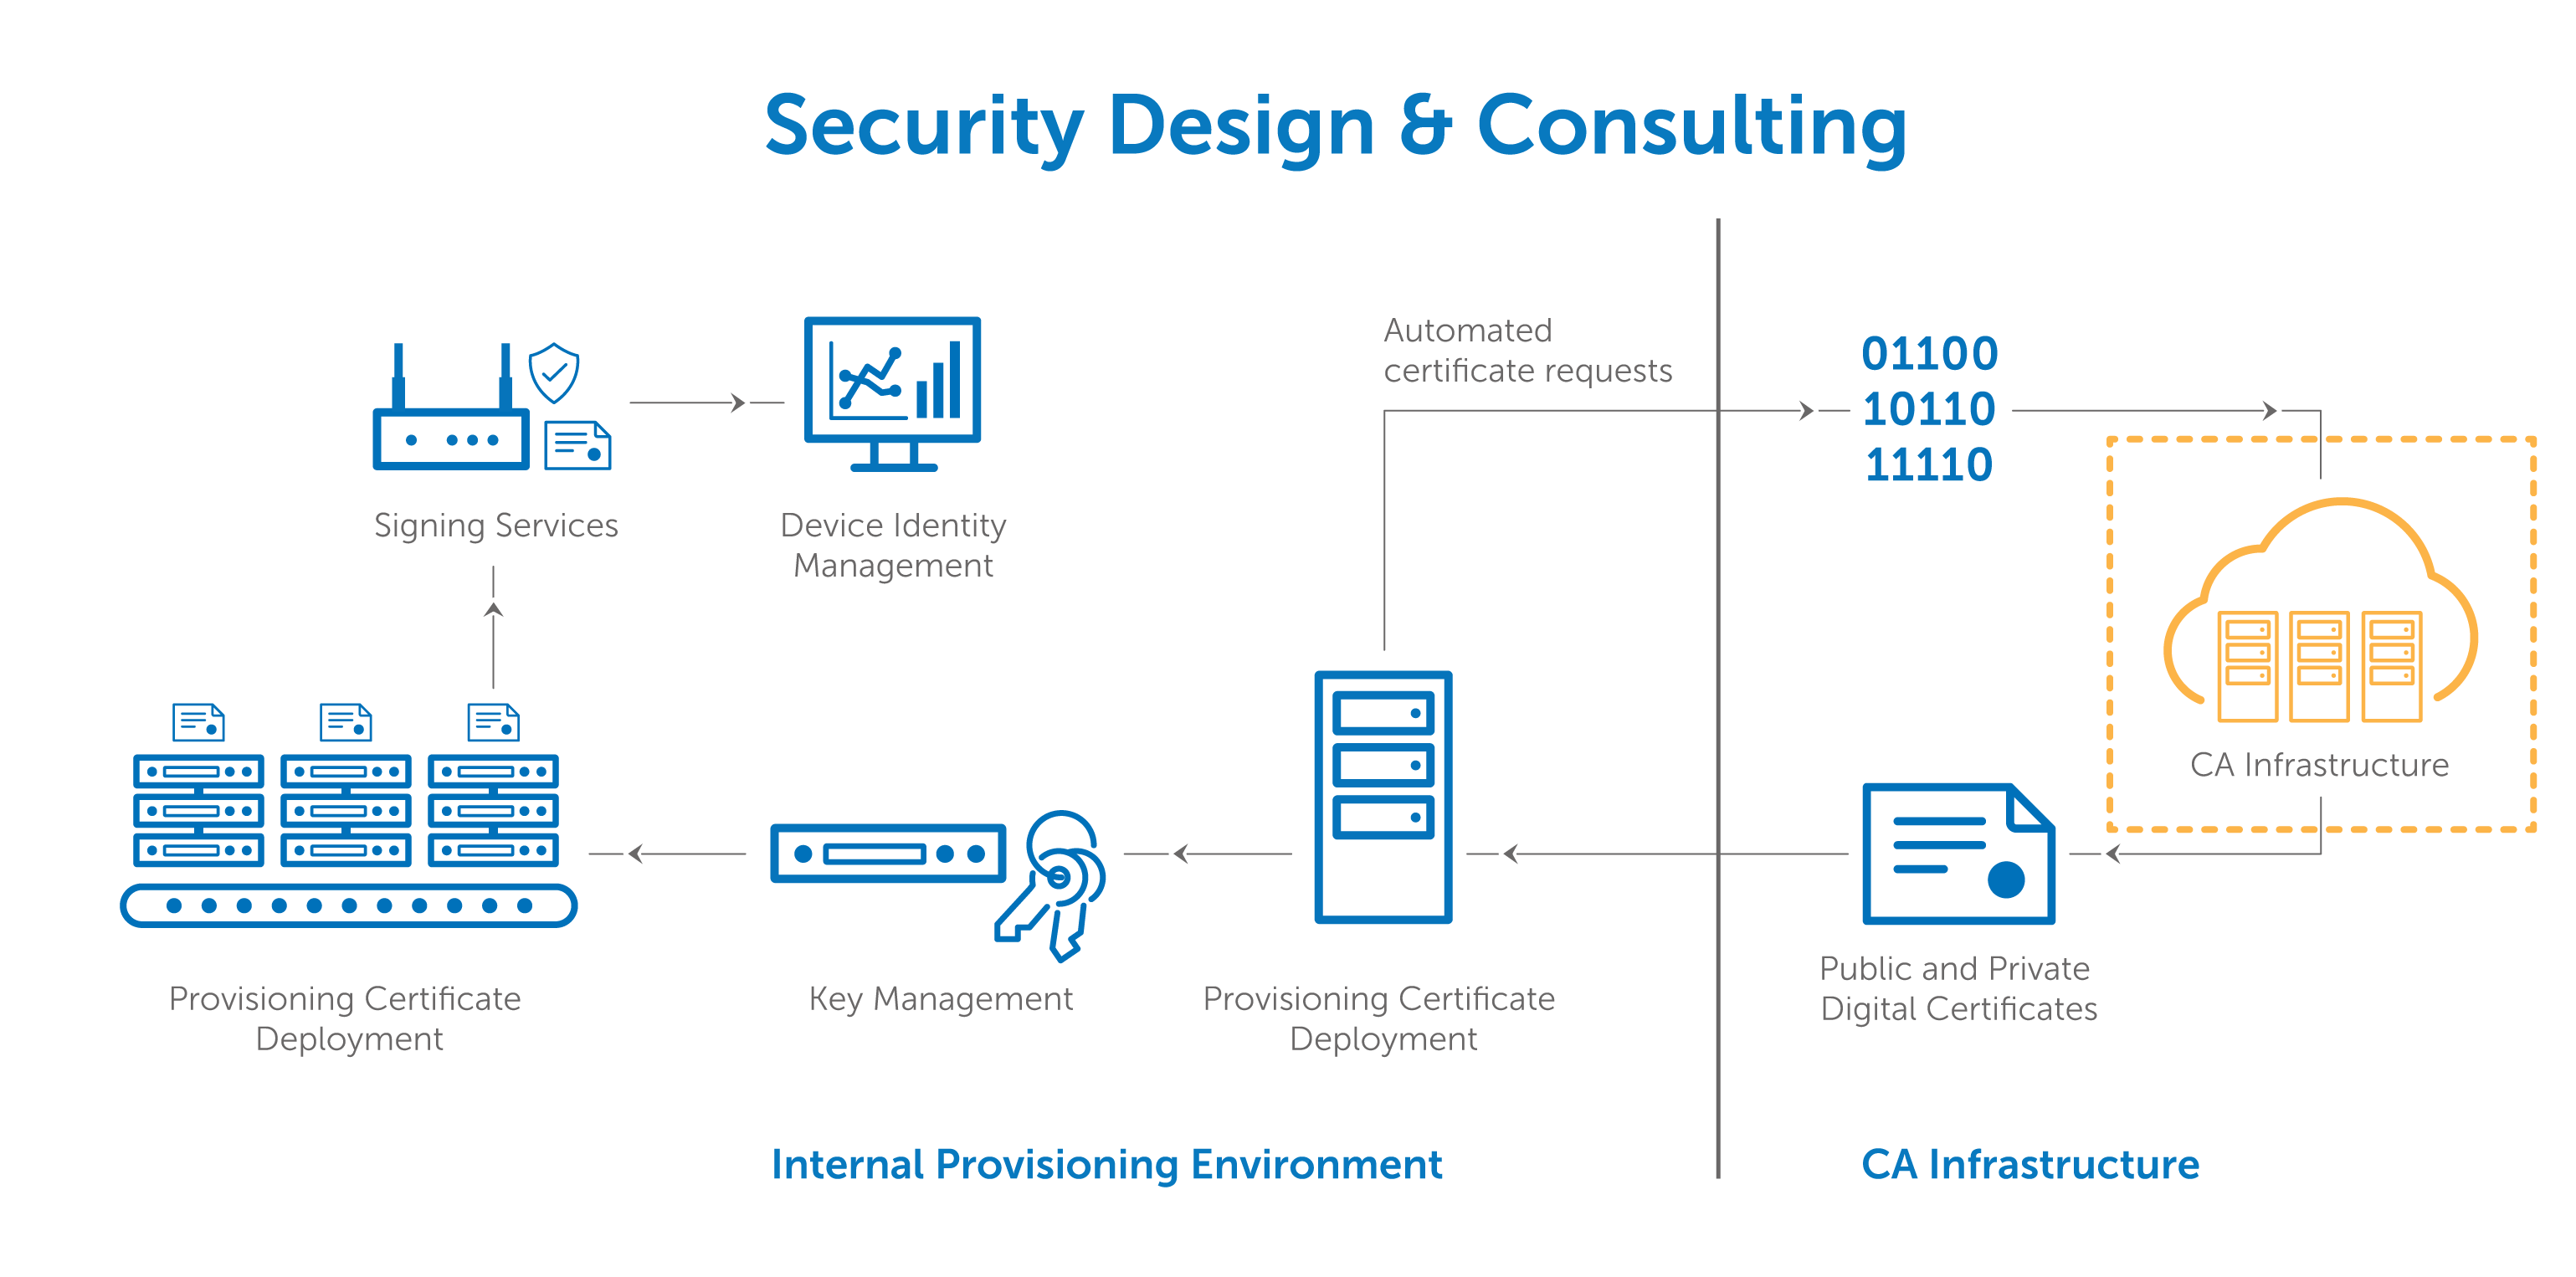 Iot ca infrastructure solutions digicert reasons to use a publicly trusted ca xflitez Image collections